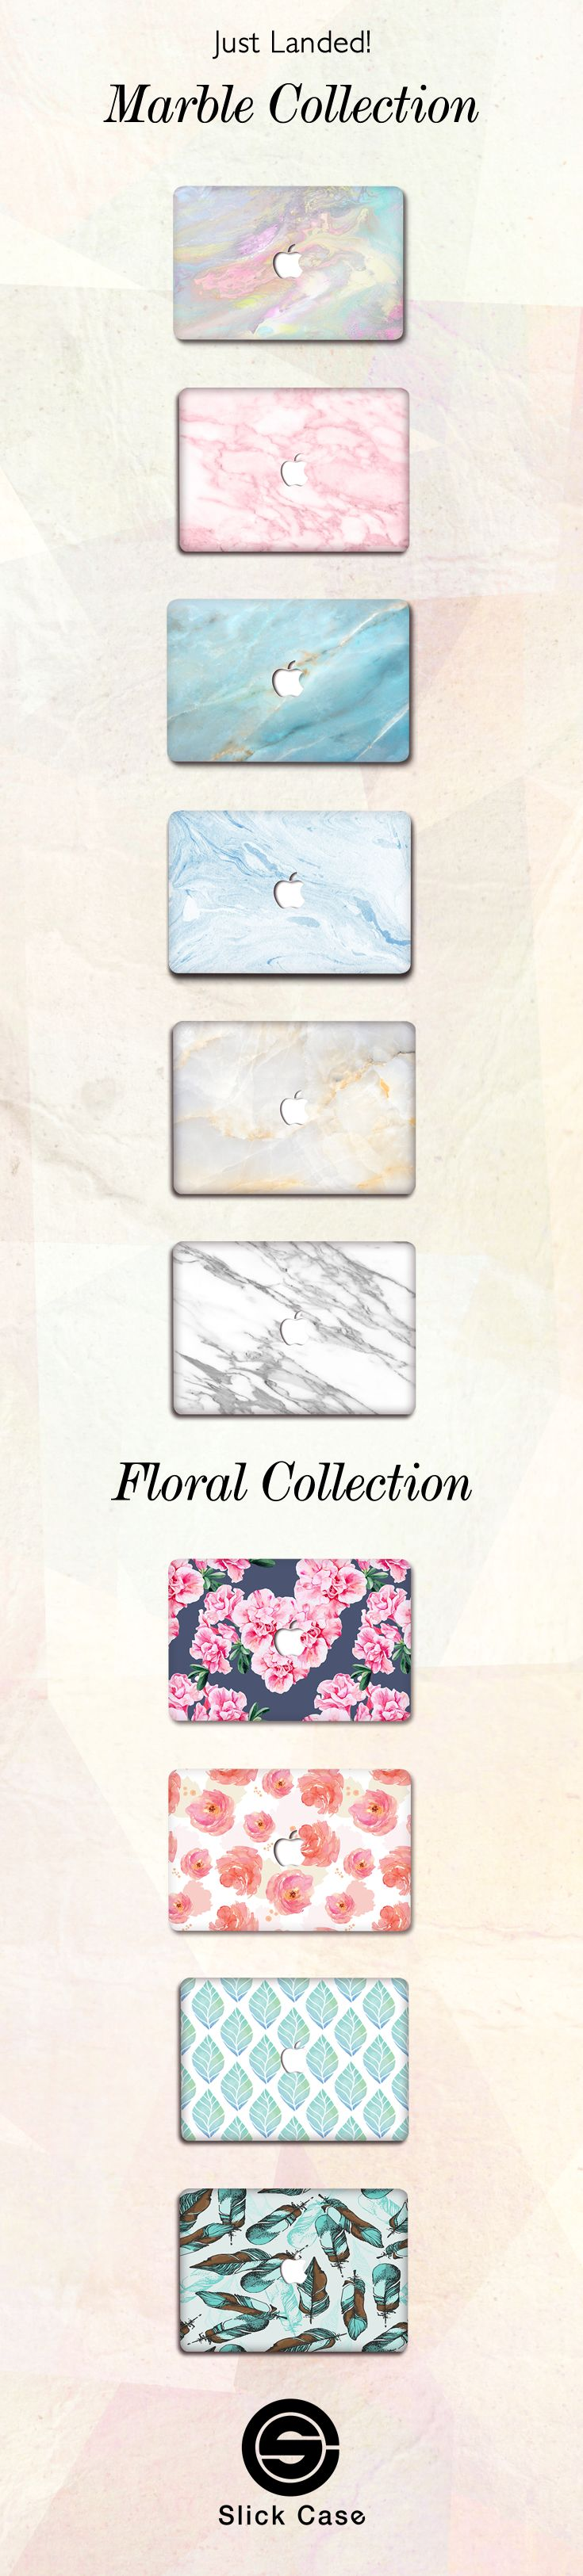 New Floral & Marble  MacBook Case Cases! Click on the link here to check all these Marble & Floral designs out: